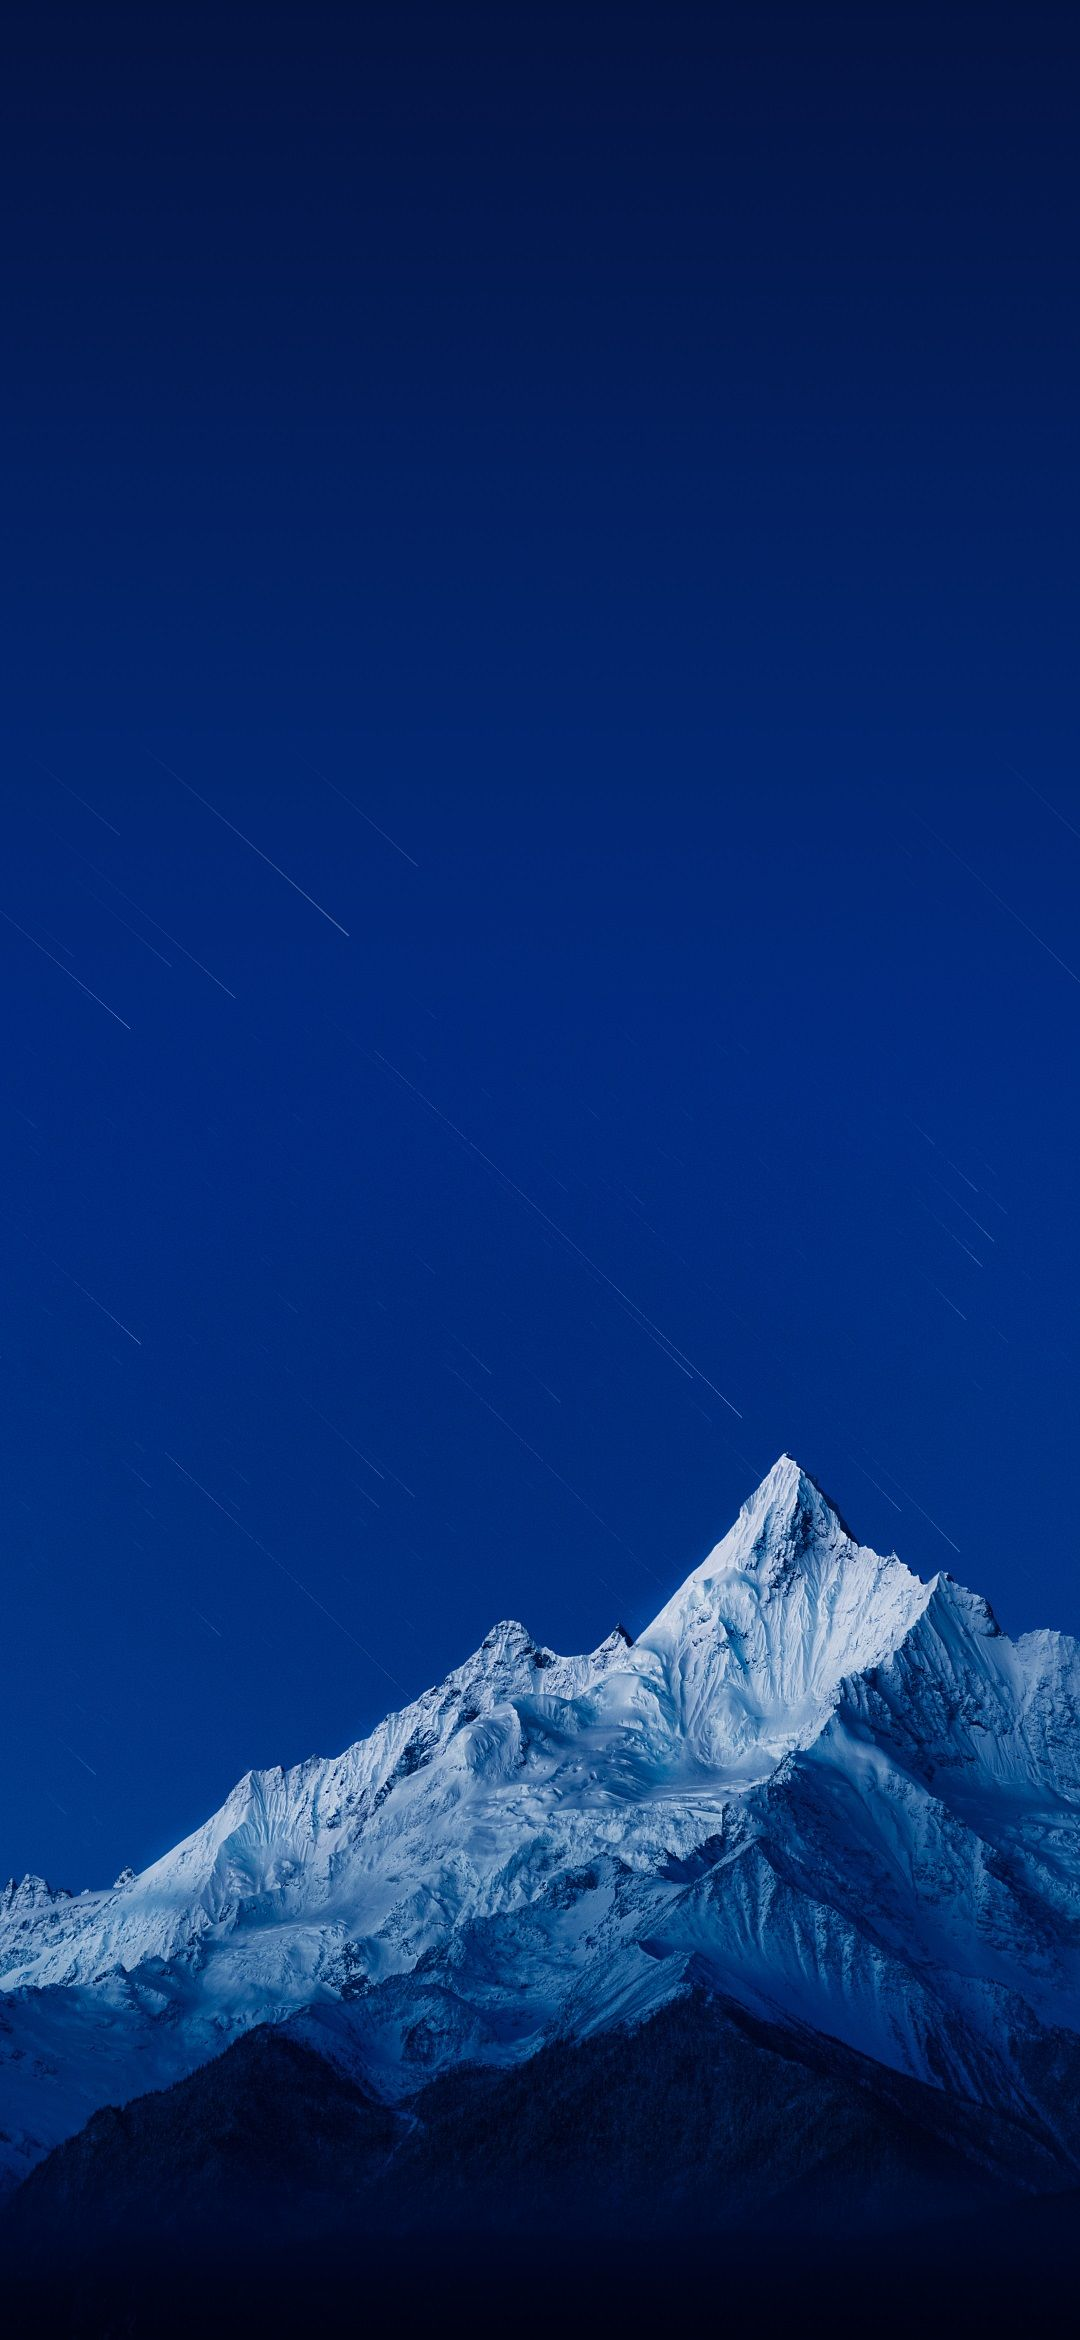 Realme X2 Pro Wallpaper In 2020 Blue Wallpaper Iphone Samsung Wallpaper Android Phone Wallpaper